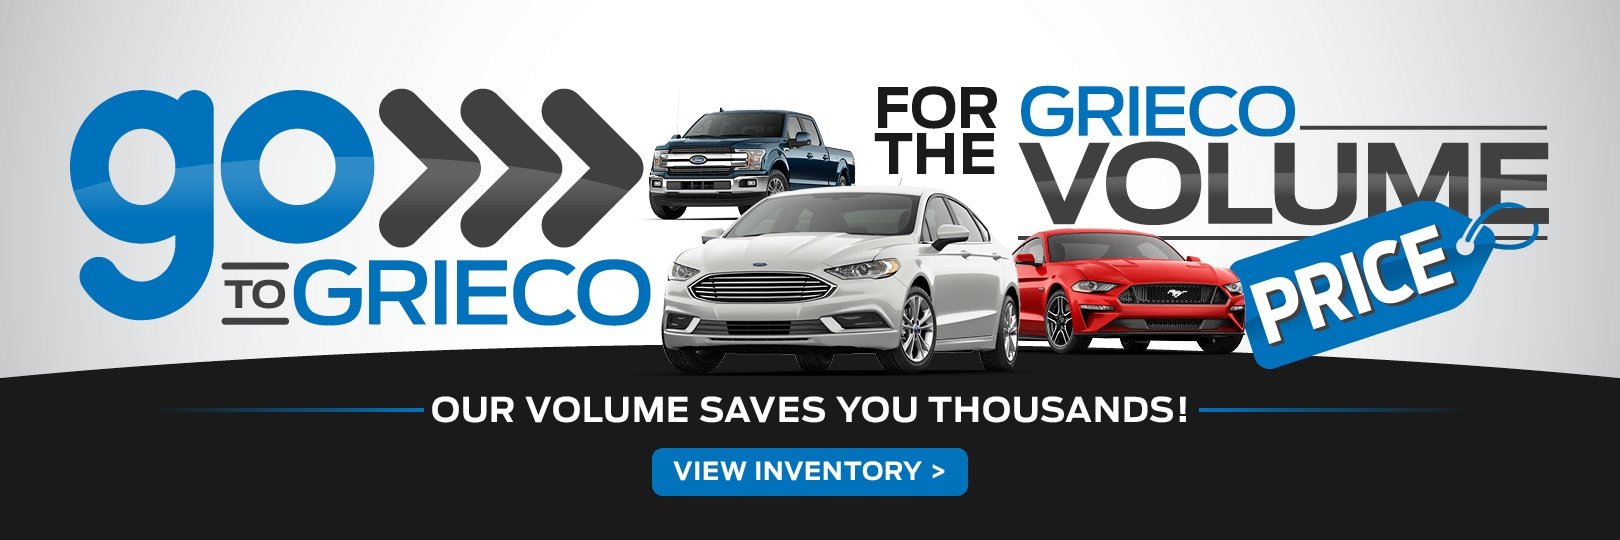 New Used Ford Dealership Grieco Ford Raynham MA - Ford dealers in ma